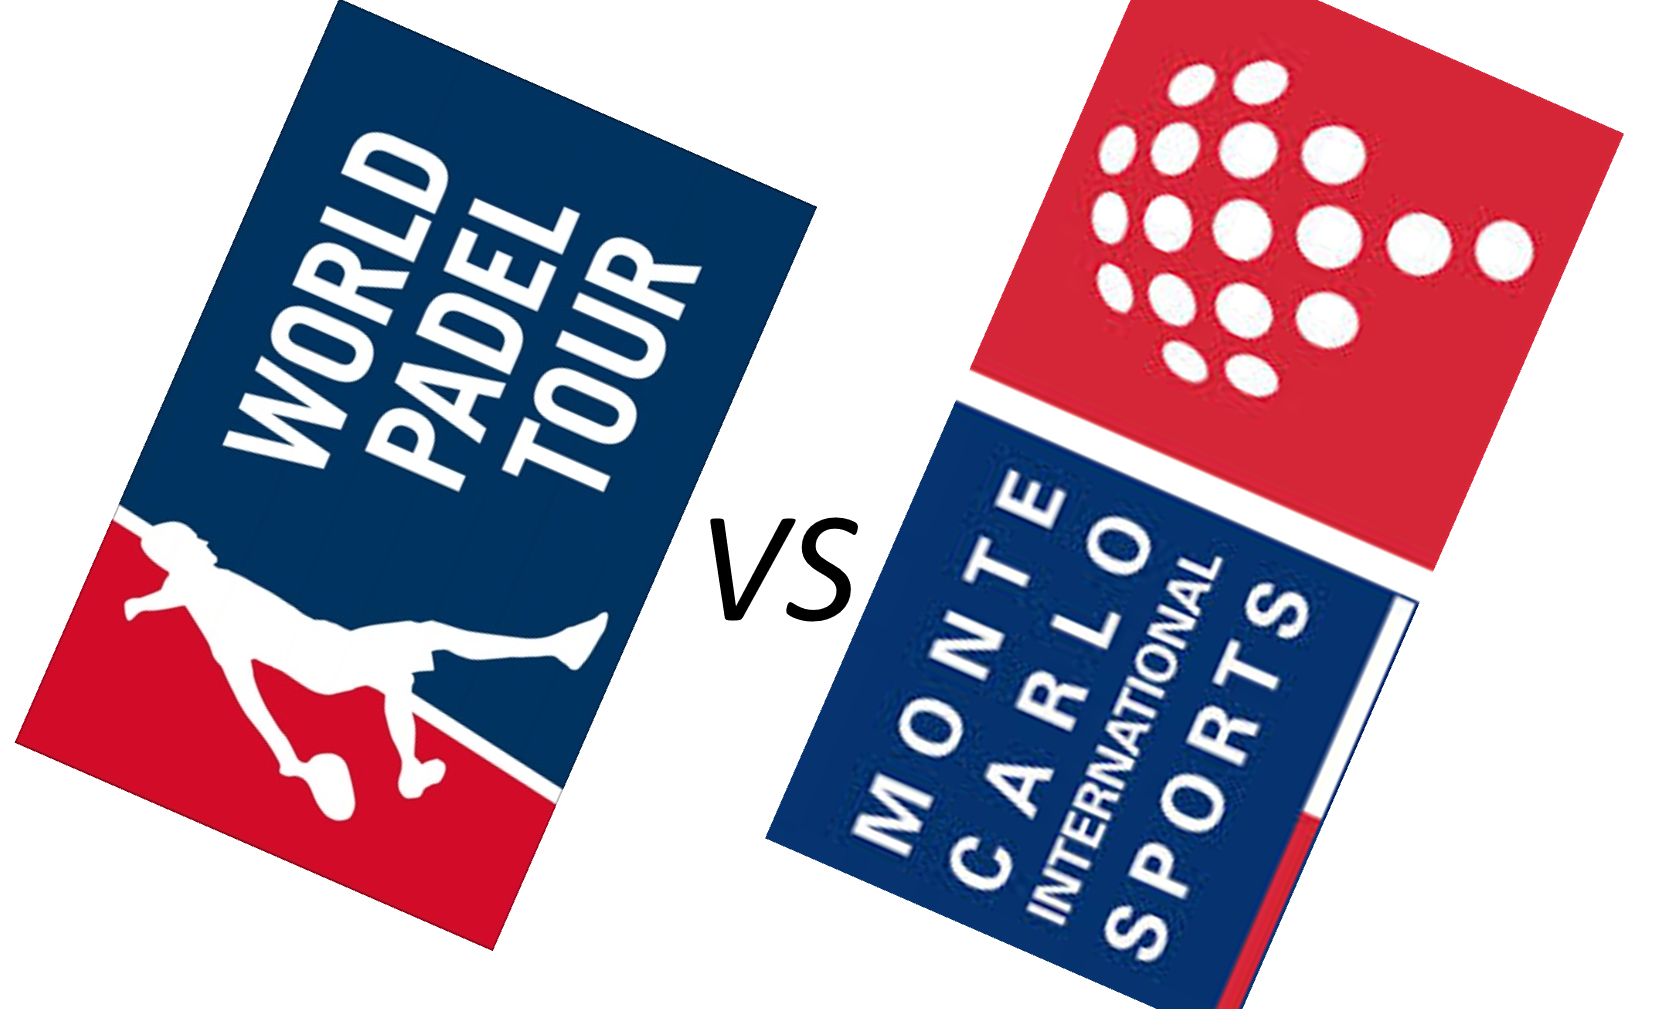 World Padel Tour vs Monte Carlo International Sports